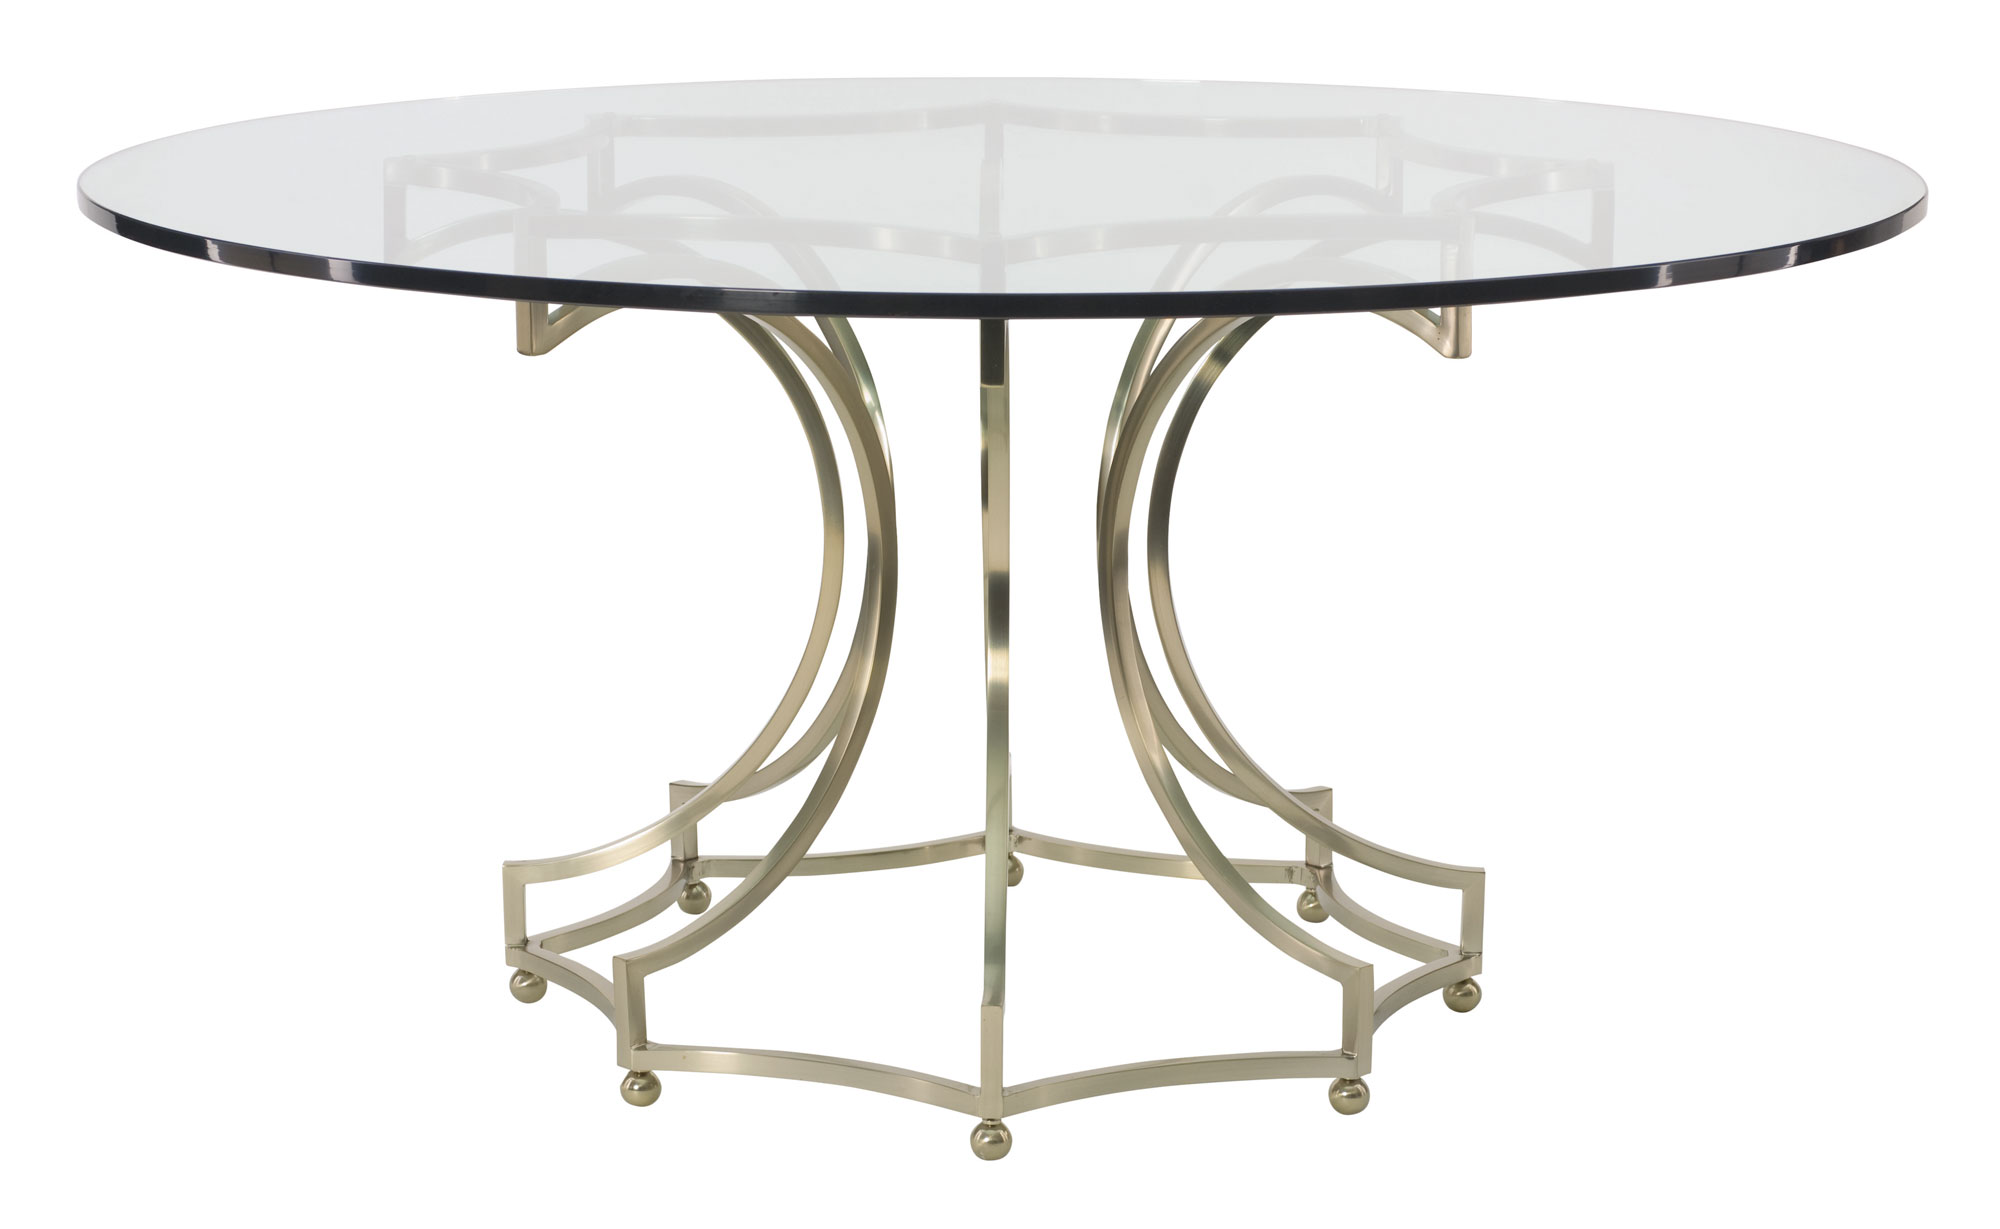 mosaic outdoor accent table marvelous interior homes zaltana round dining glass top with metal base bernhardt side ikea sets making small large umbrellas long raw wood extra